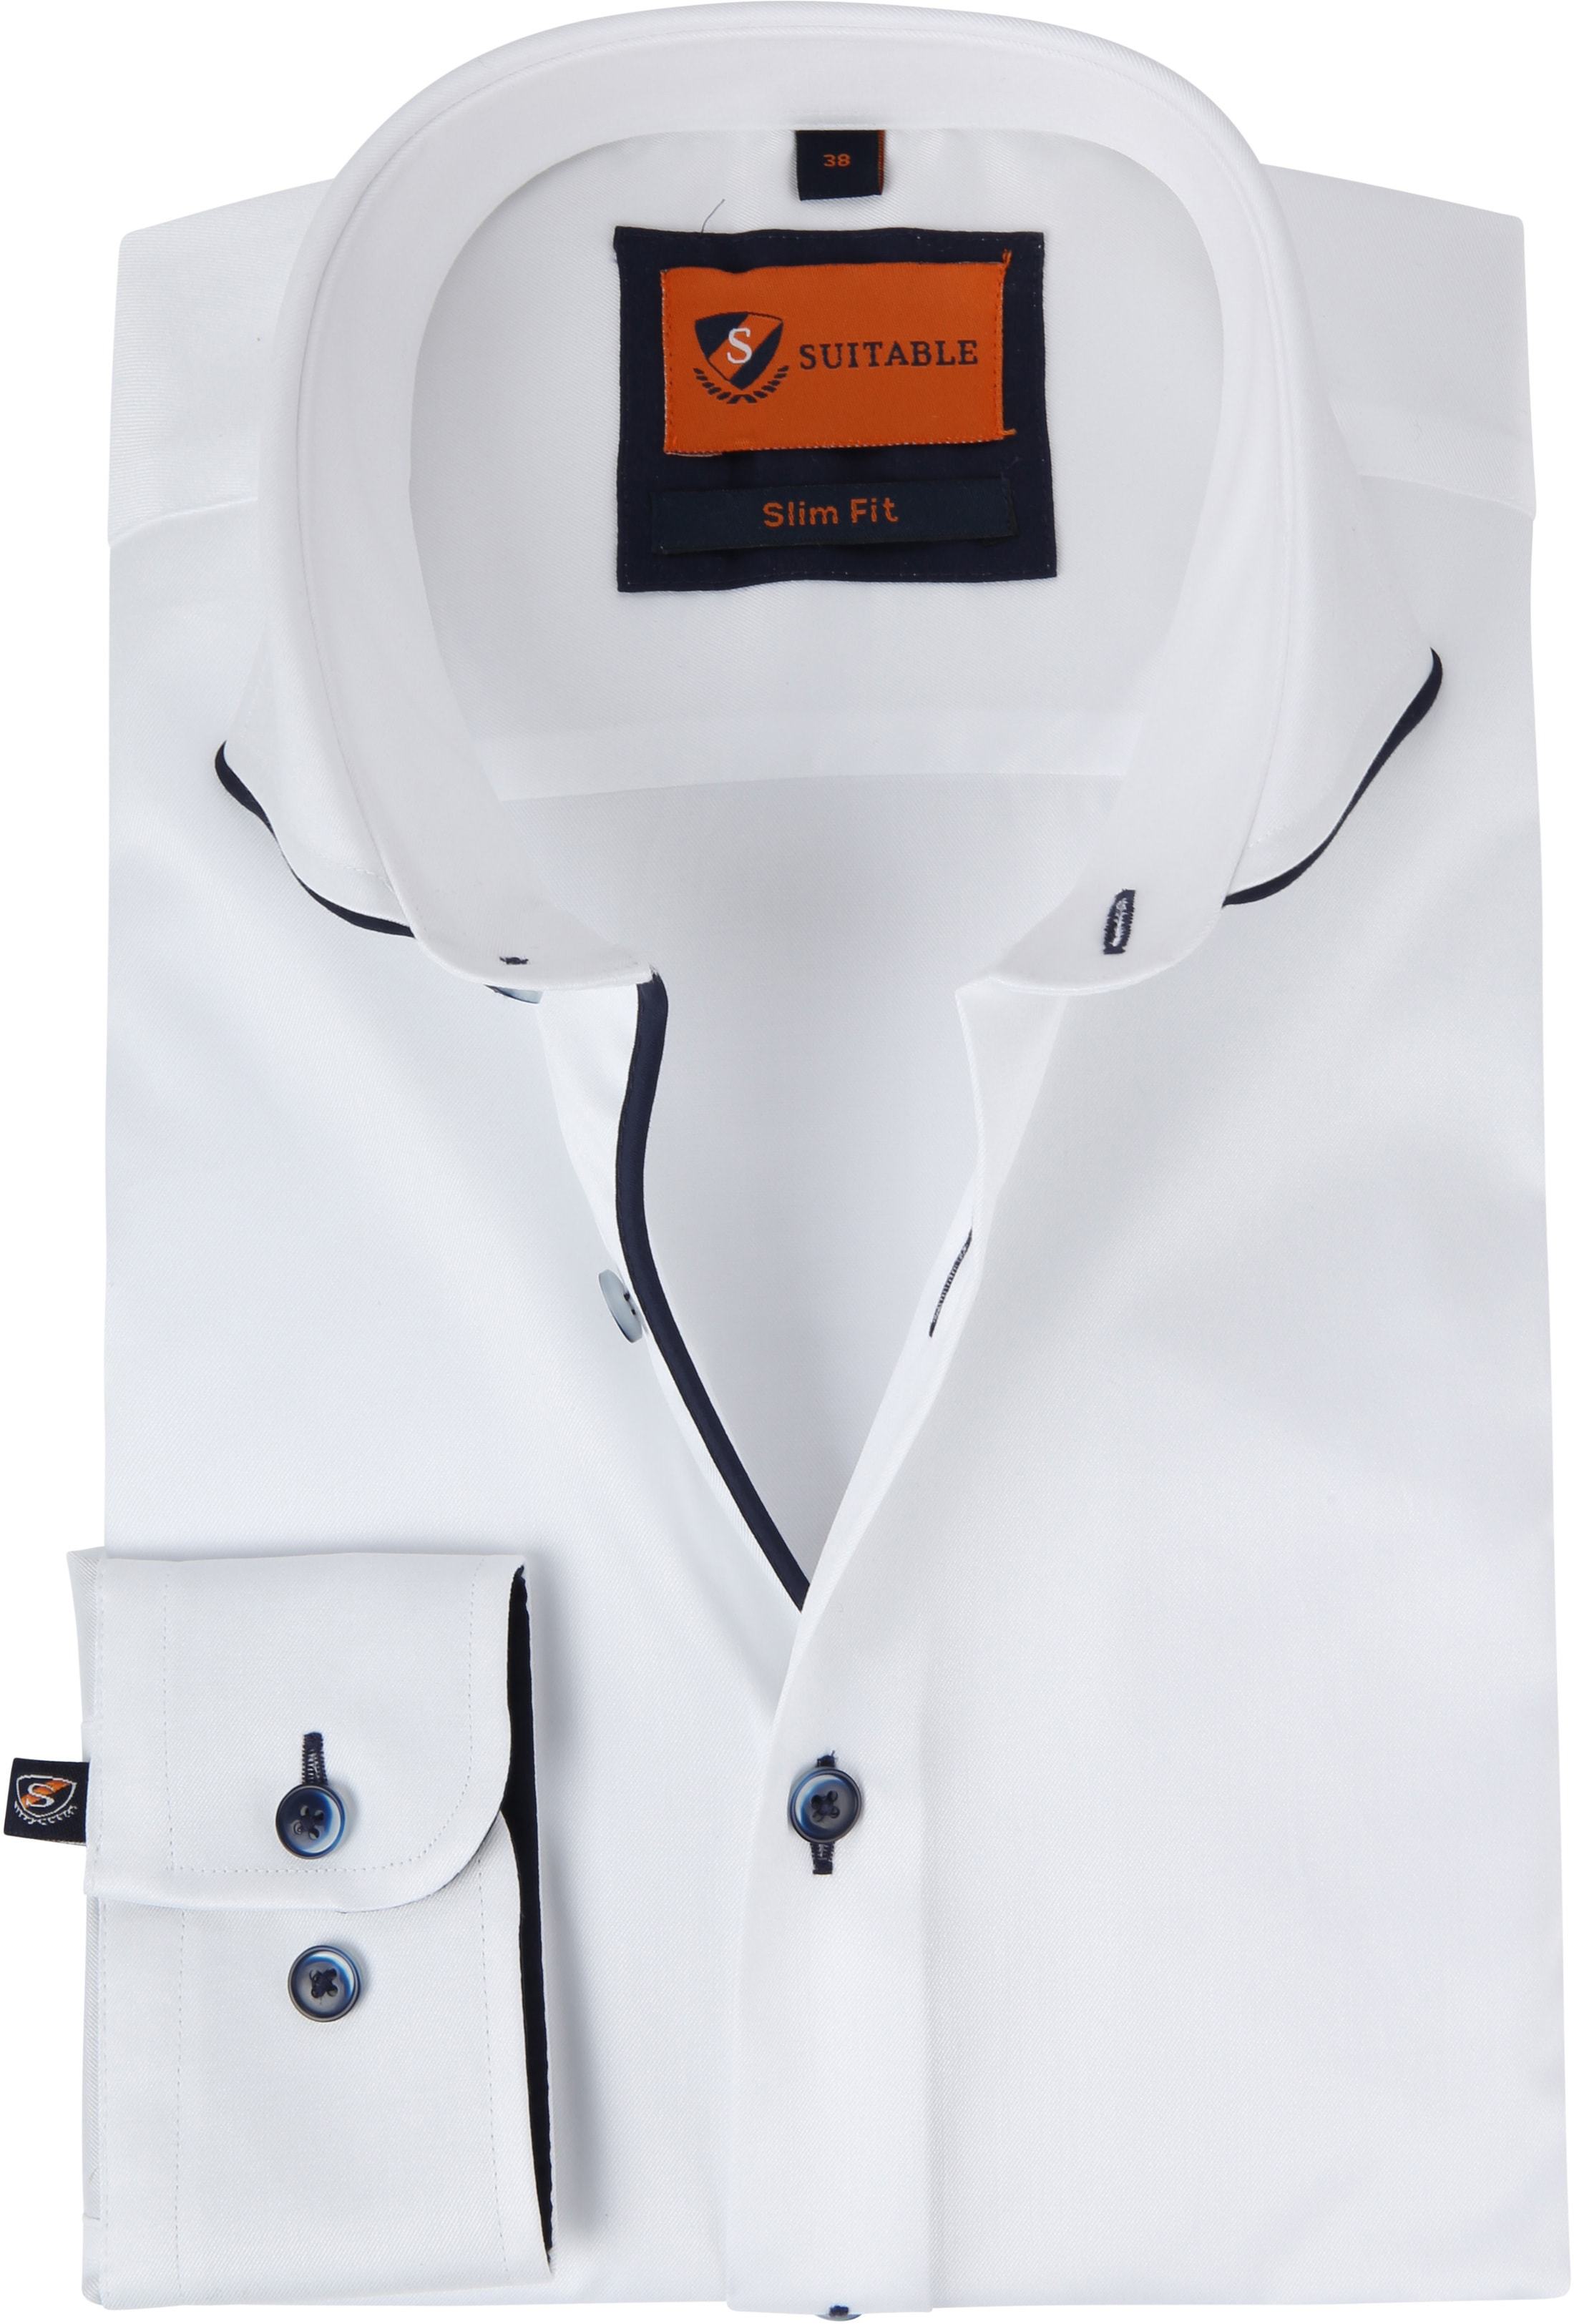 Suitable Shirt Smart White